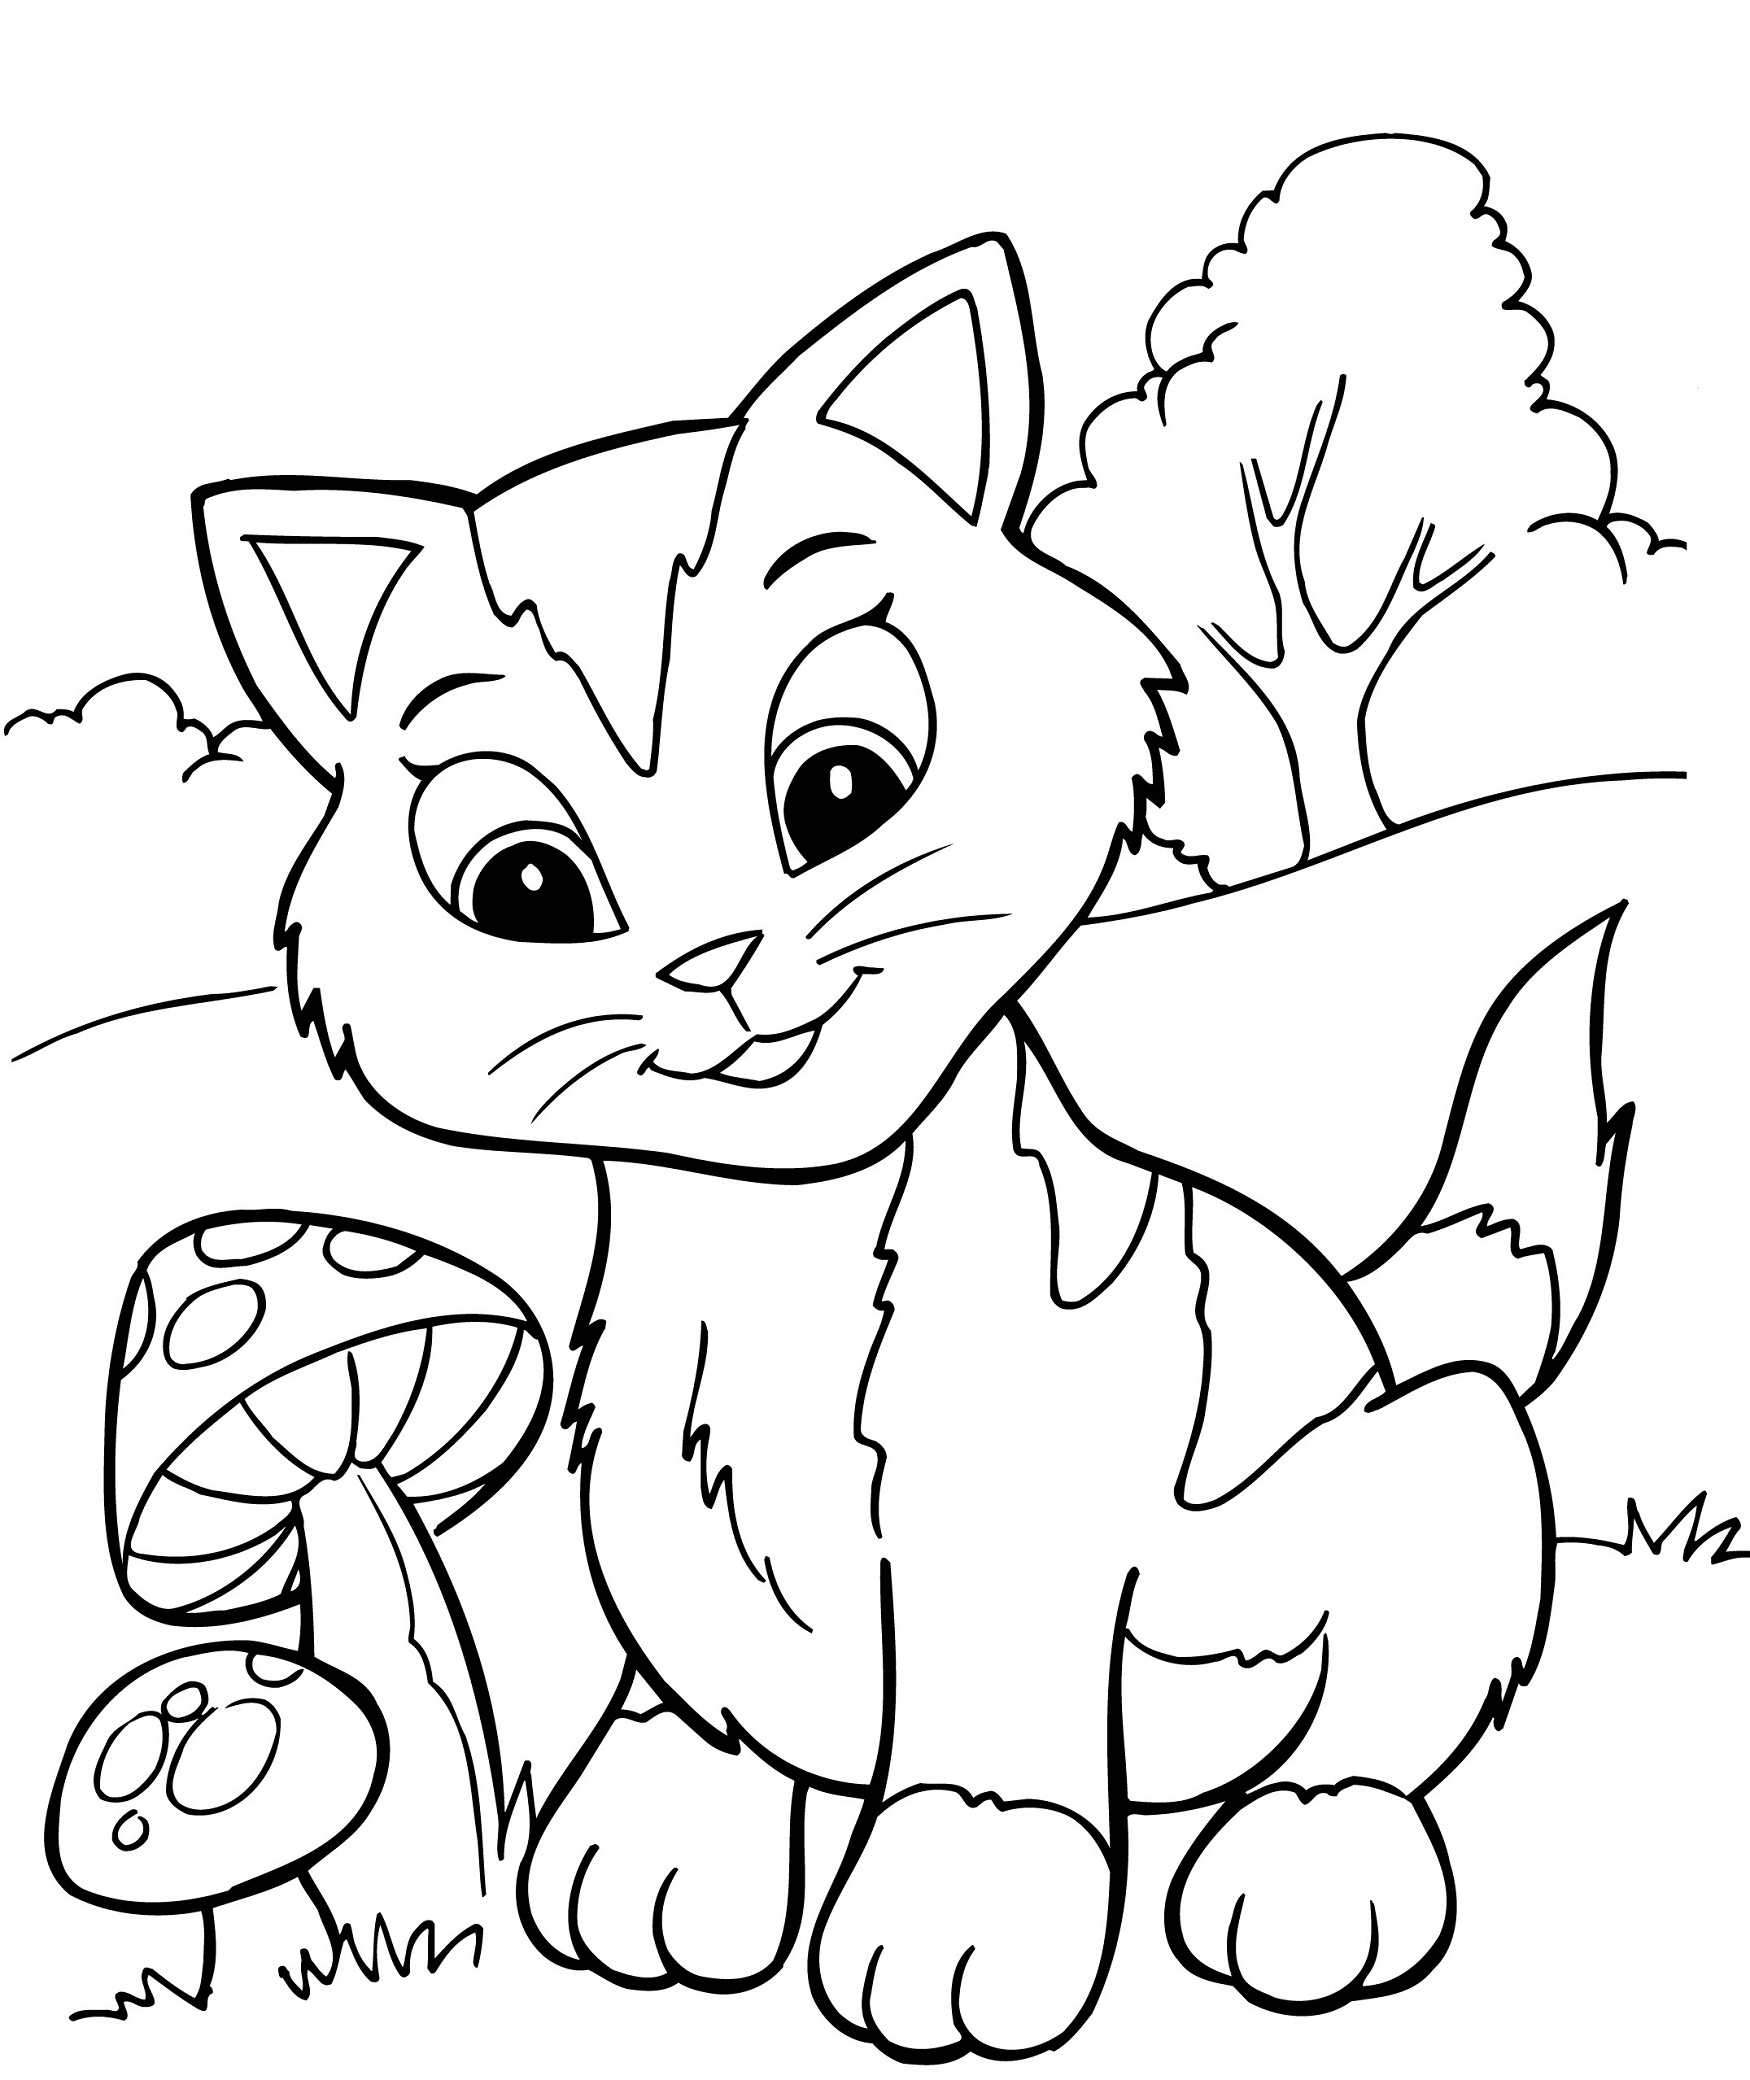 childrens colouring pictures coloring pages for girls best coloring pages for kids colouring pictures childrens